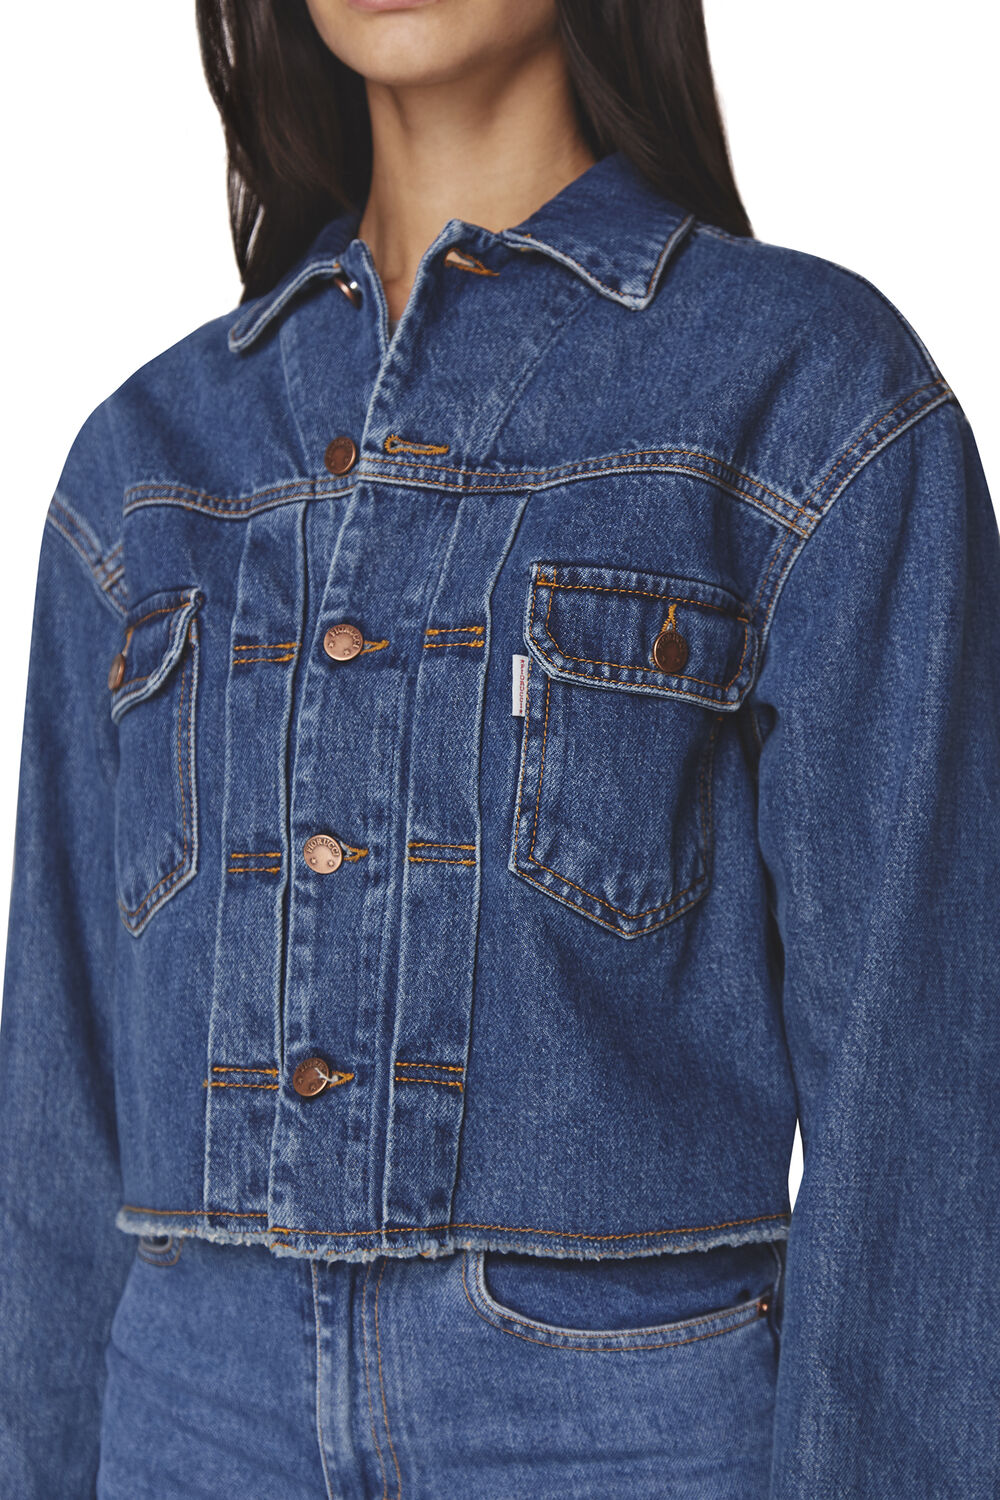 Berty Denim Jacket